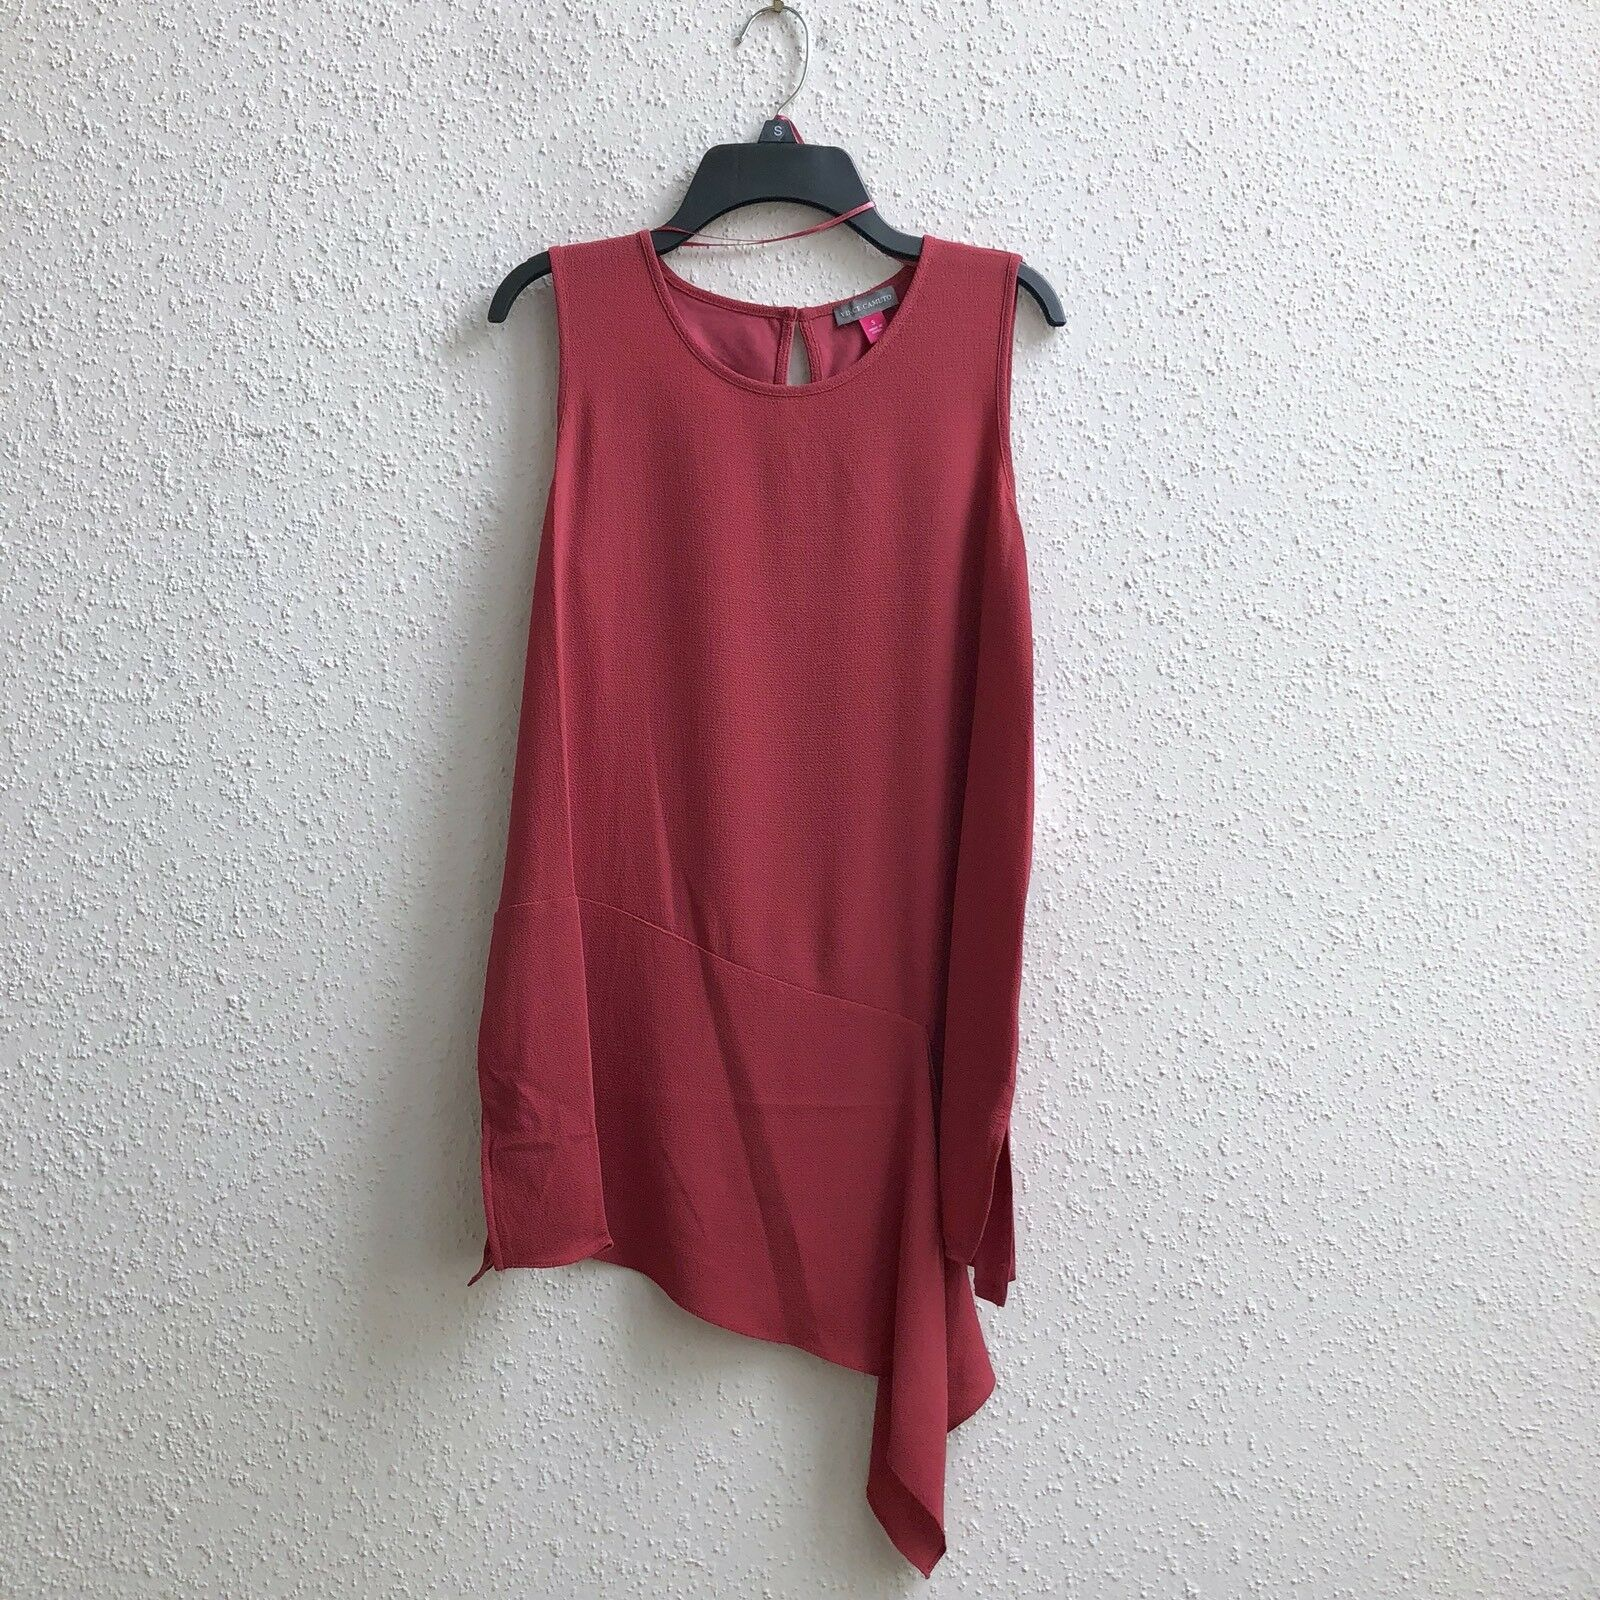 69 NWT Vince Camuto Mix Media Sz S Asymmetric Split Hem Sleeveless Blouse RED